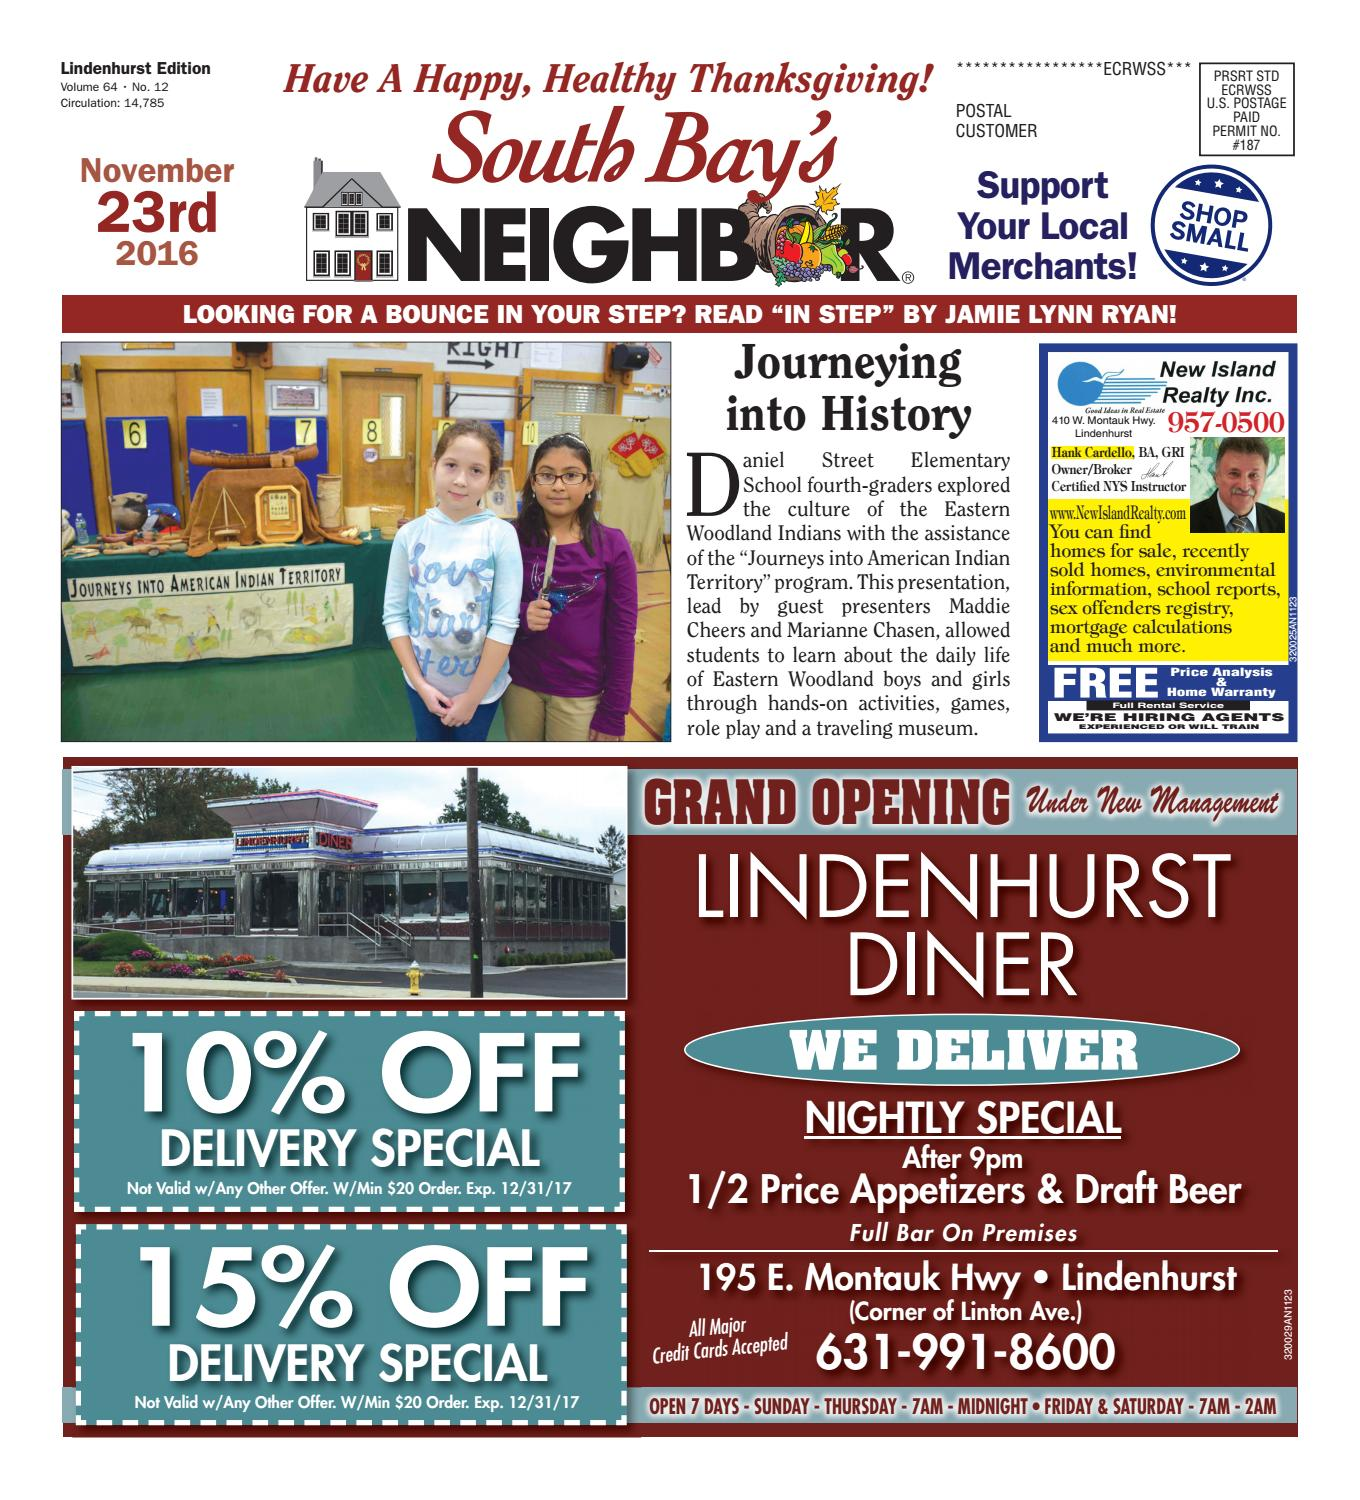 November 23 2016 Lindenhurst by South Bay s Neighbor Newspapers issuu